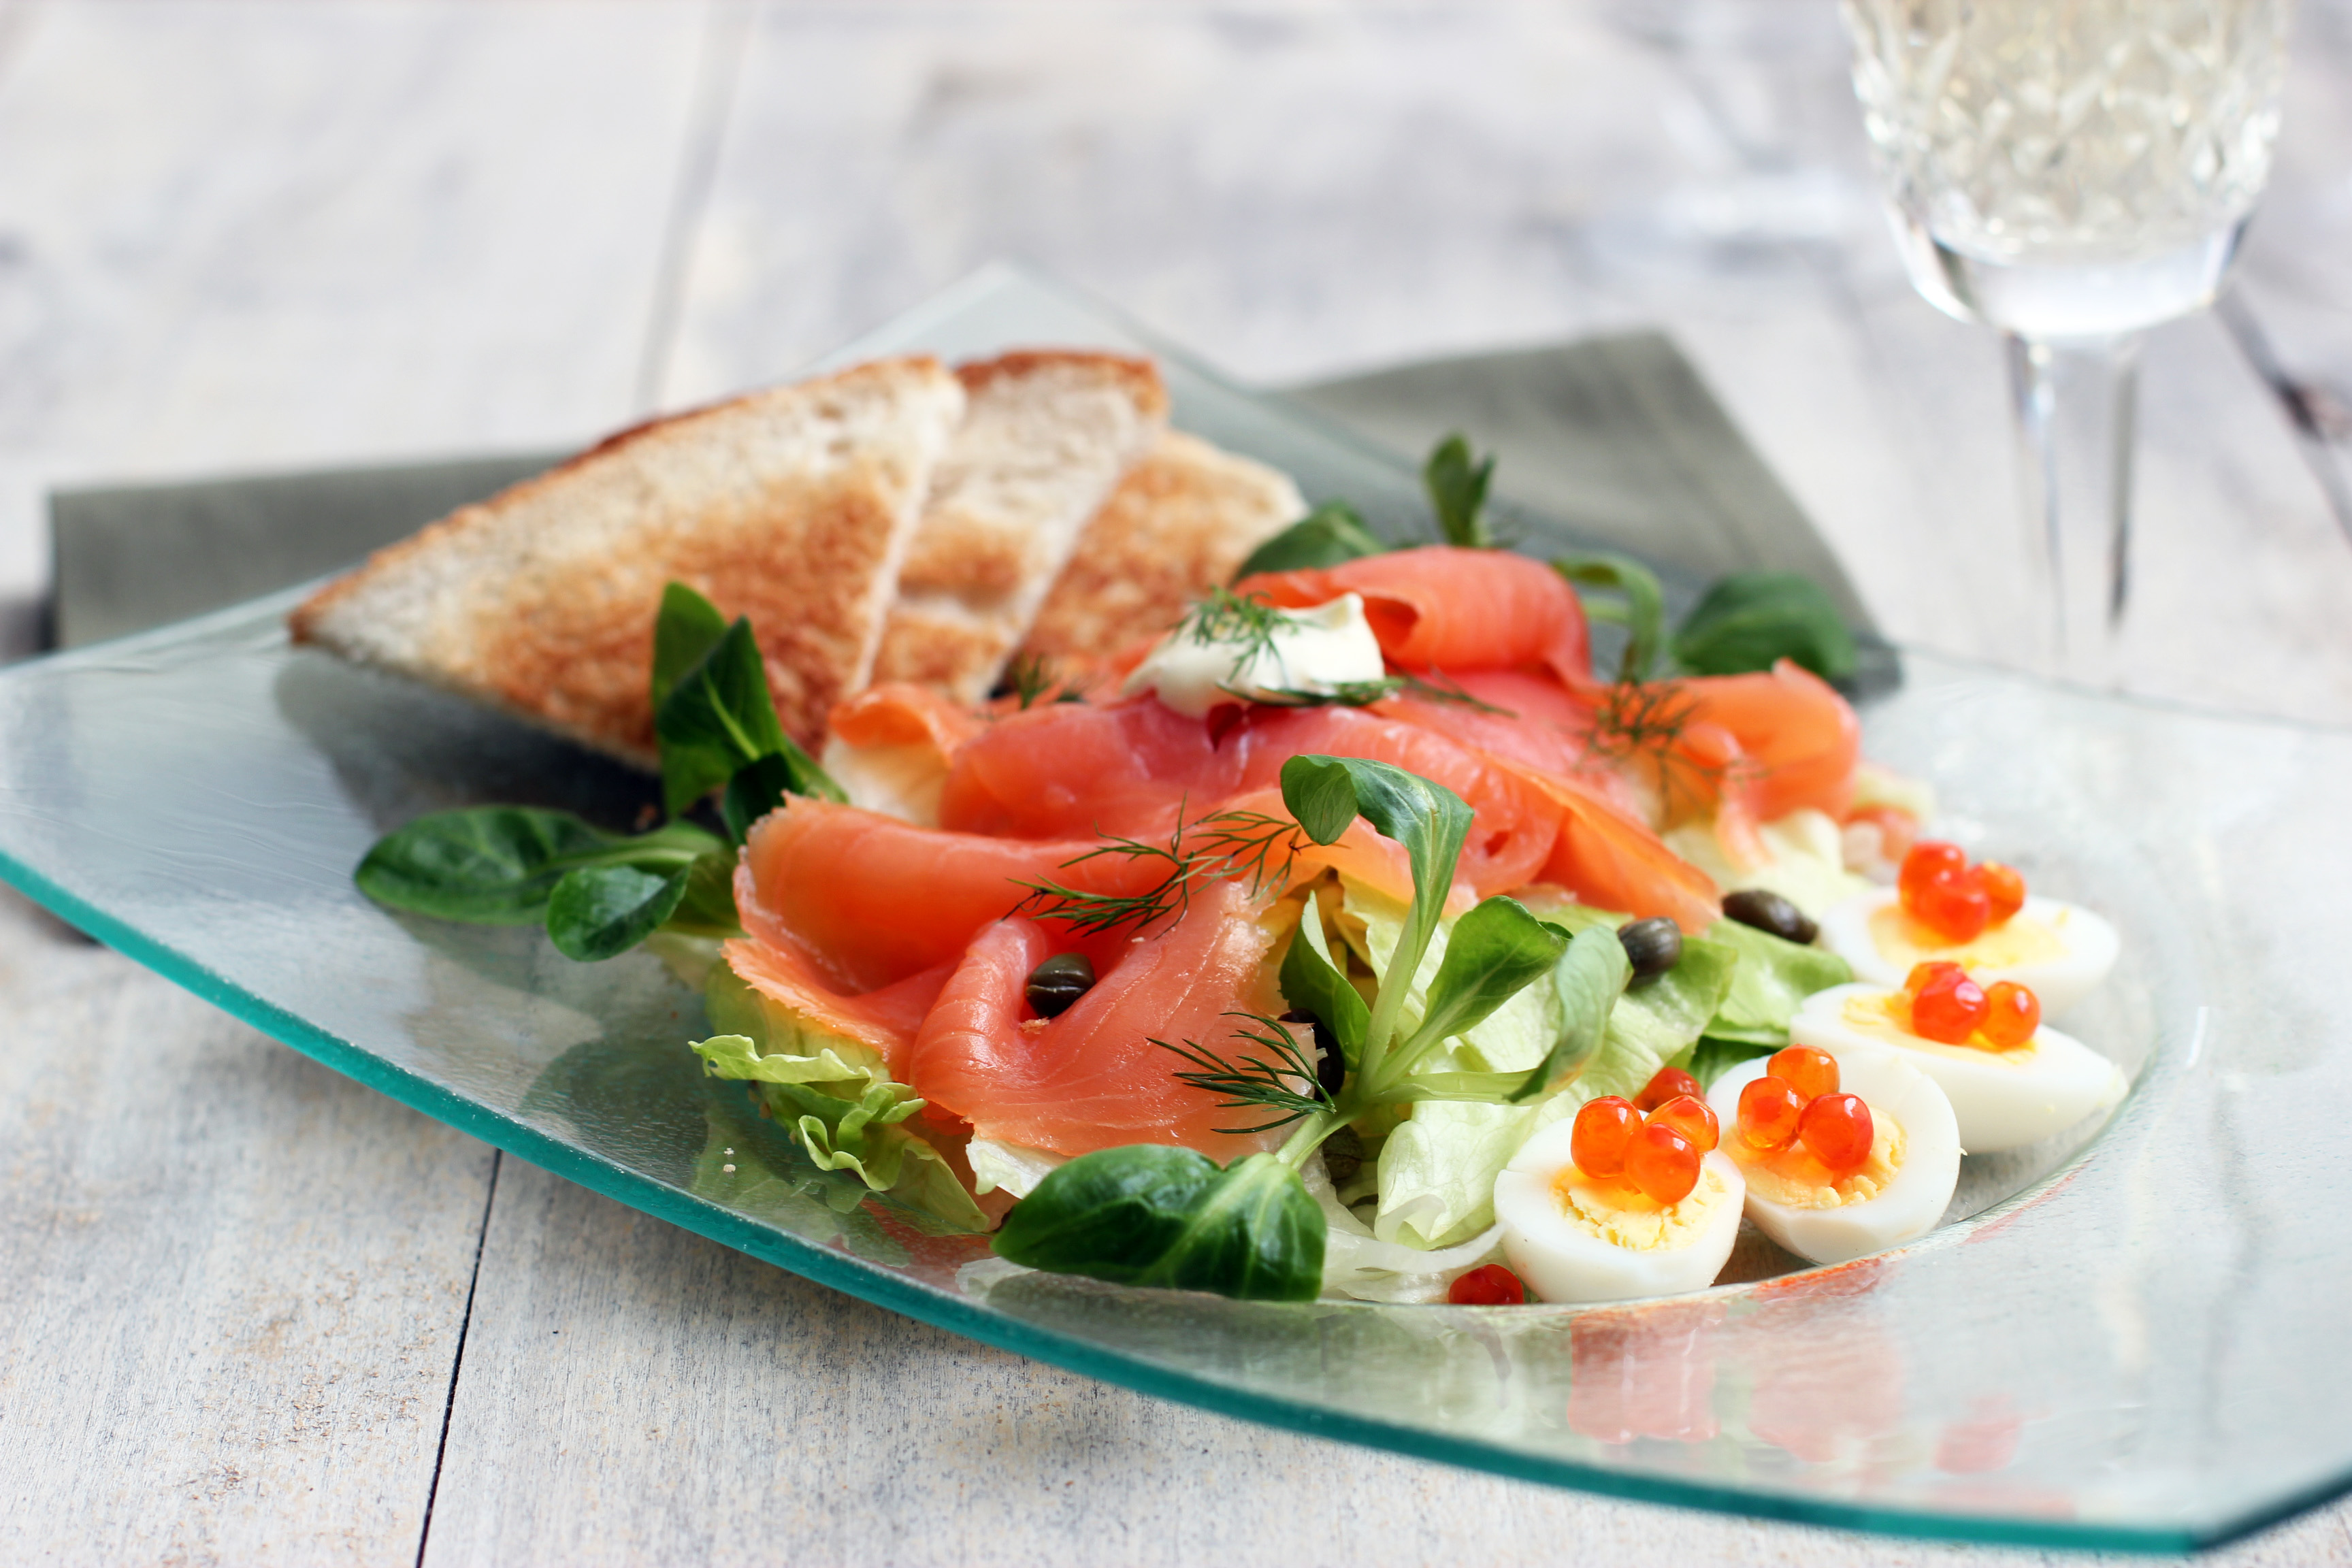 Fullsize Of Smoked Salmon Salad